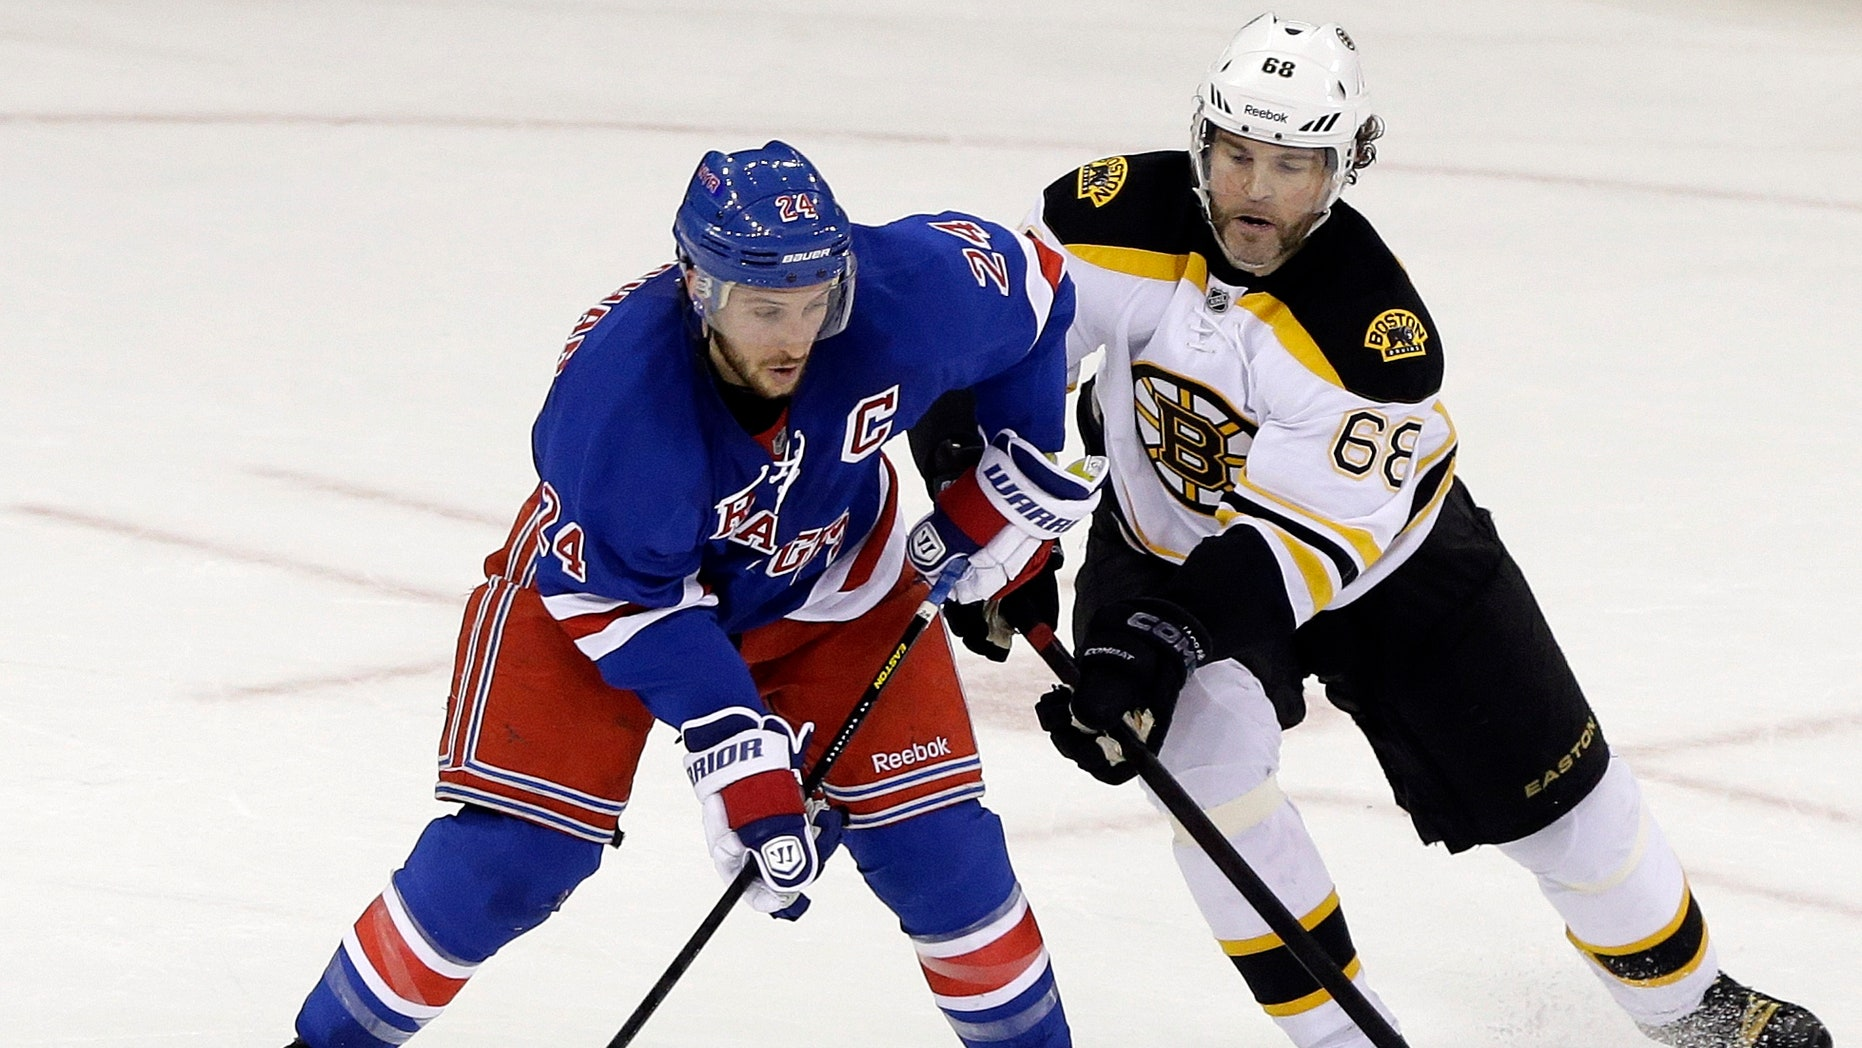 Boston Bruins' Jaromir Jagr (68) and Ryan Callahan (24) fight for control of the puck during the first period in Game 4 of the Eastern Conference semifinals in the NHL hockey Stanley Cup playoffs on Thursday, May 23, 2013, in New York. (AP Photo/Frank Franklin II)